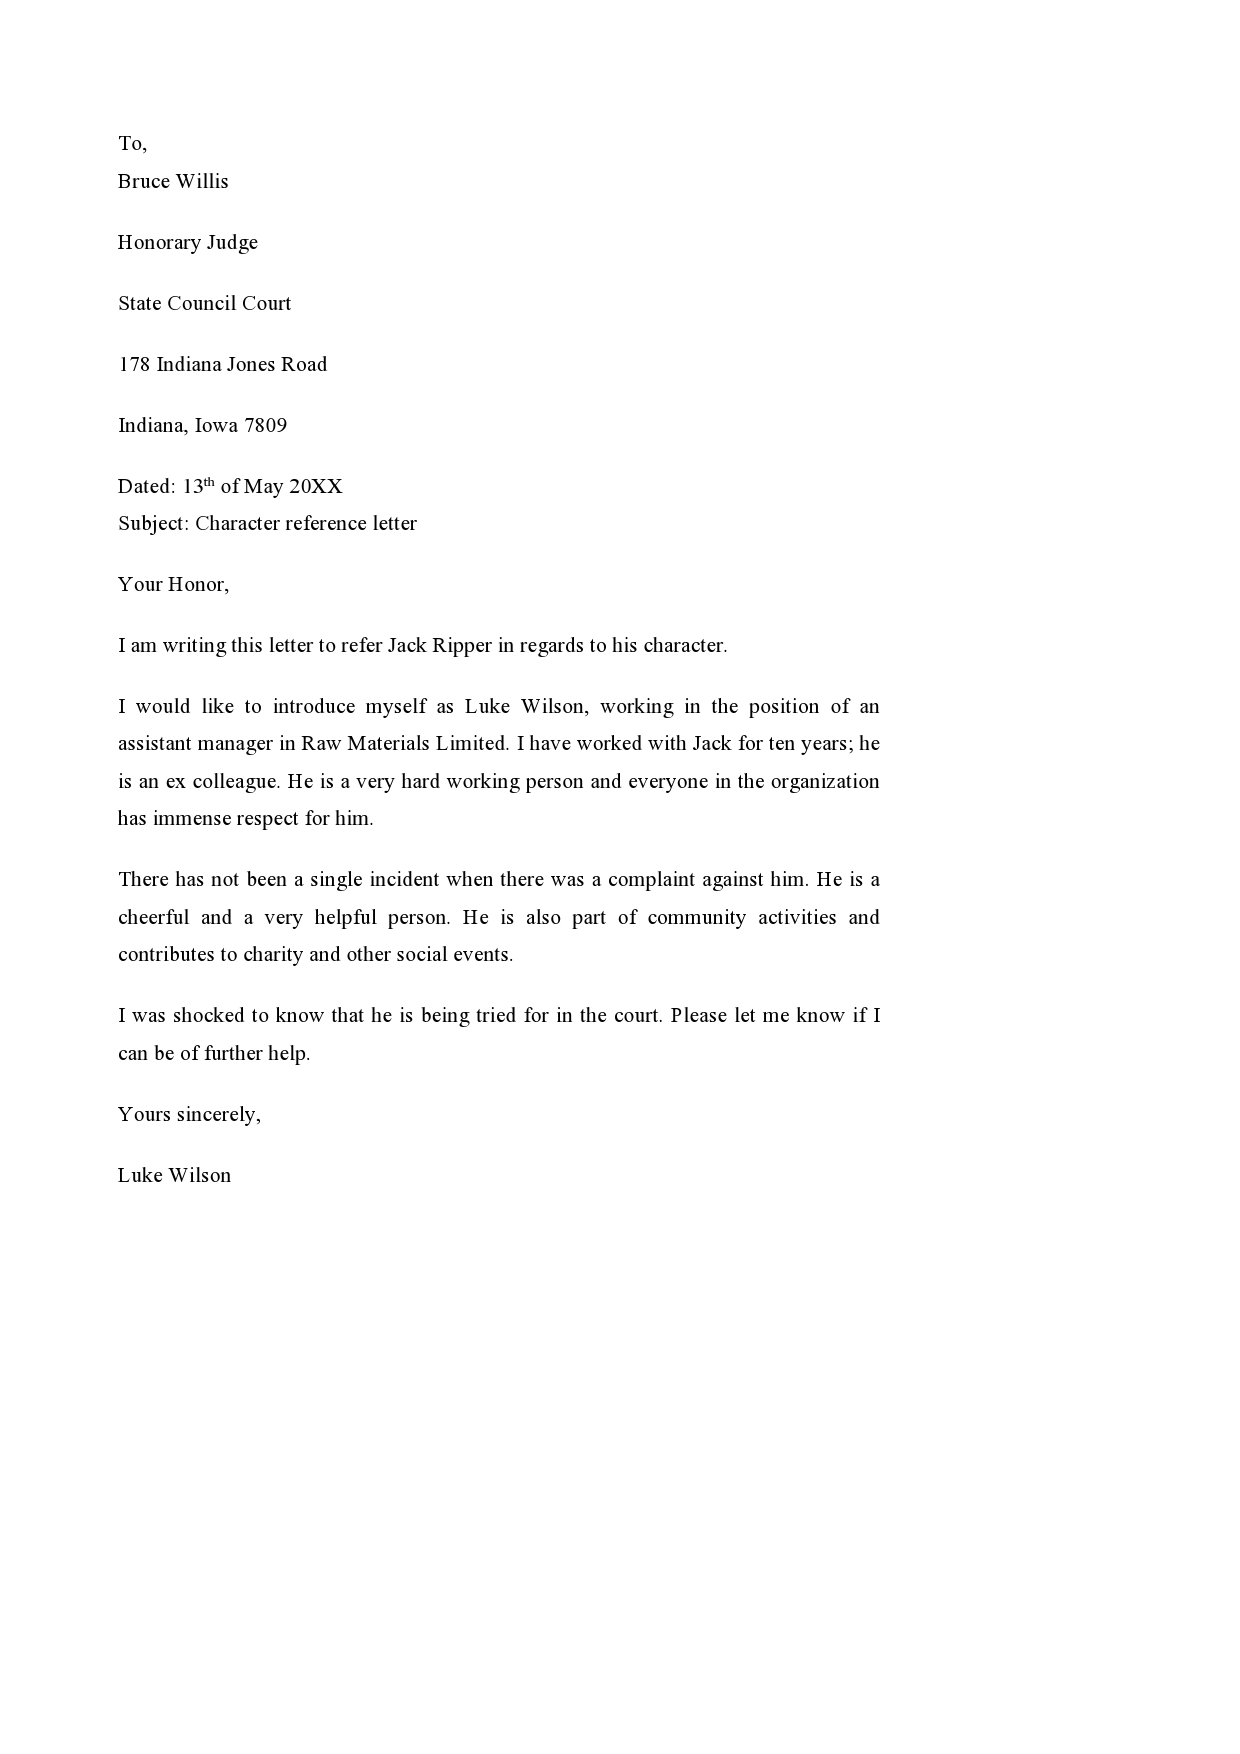 Character Reference Letter For Court Child Custody from templatearchive.com